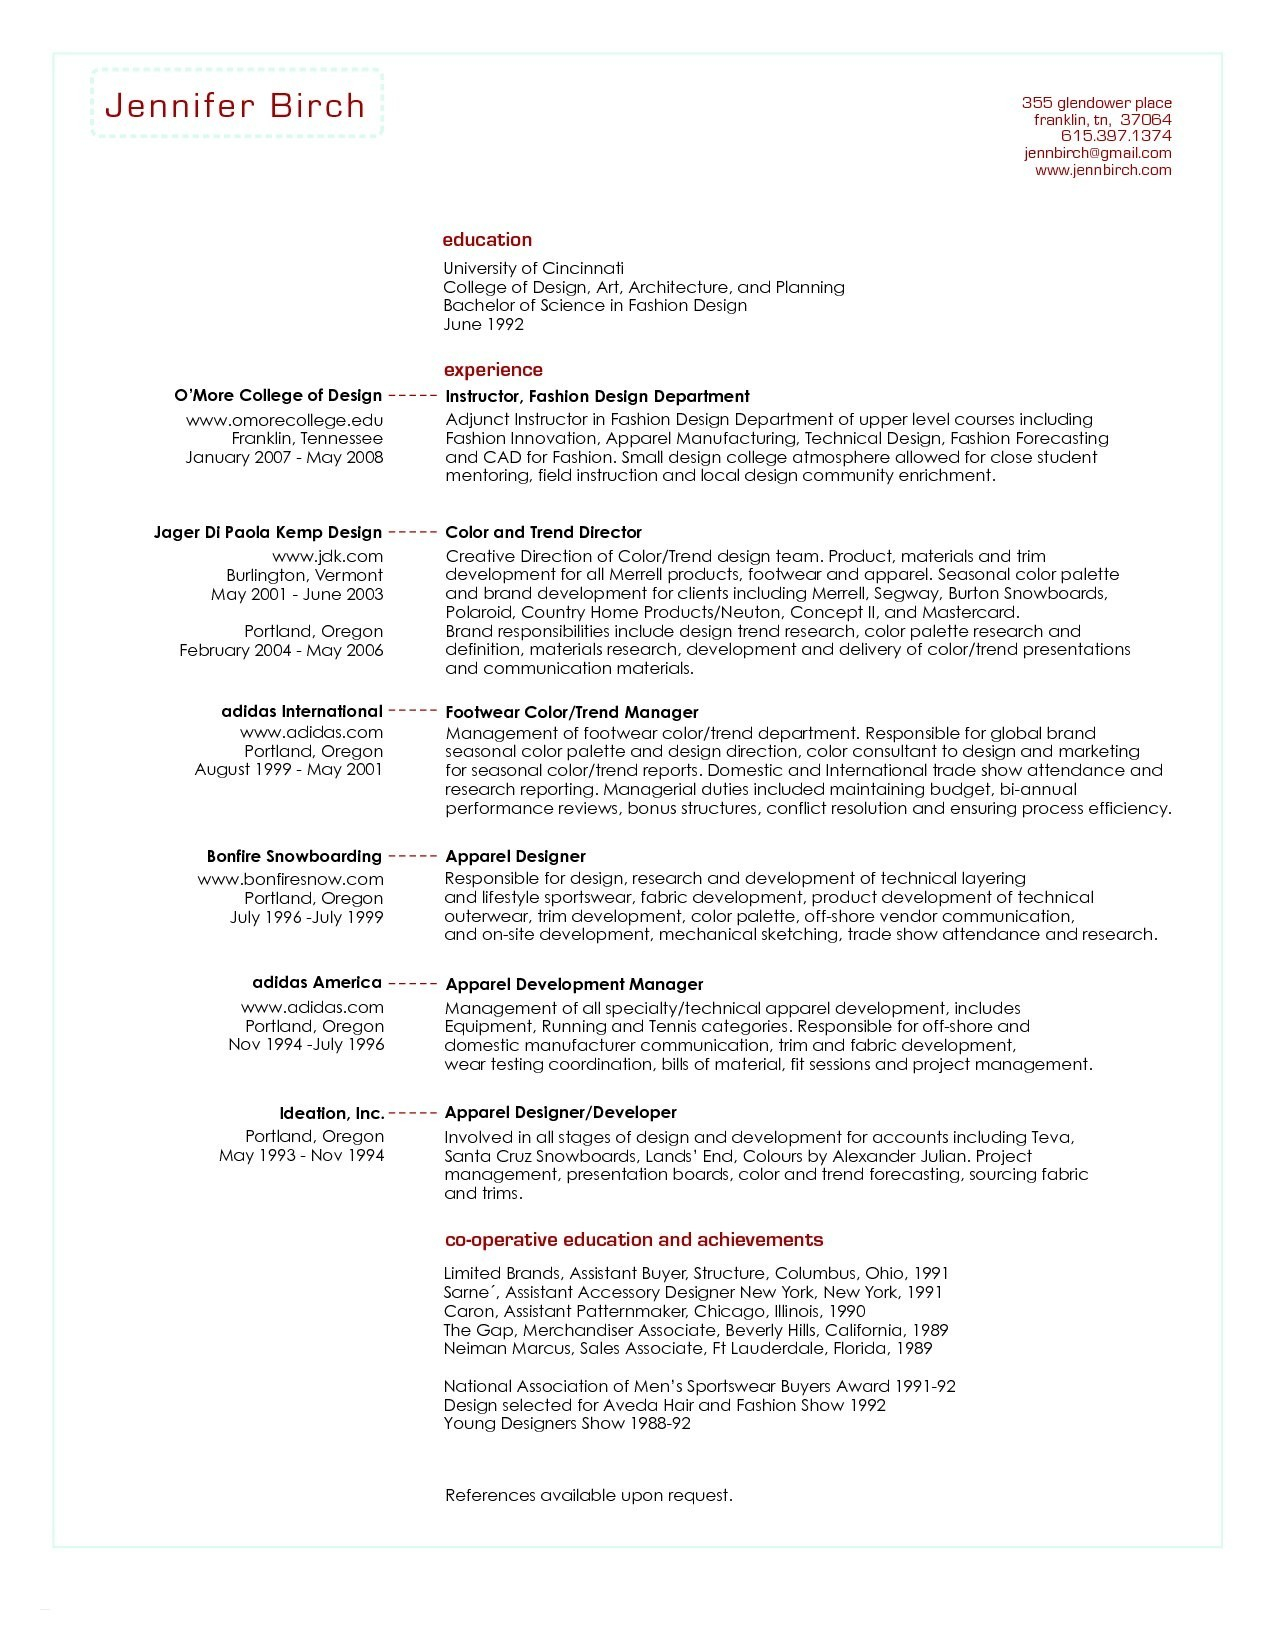 retail store resume example-Sample Sales Management Resume New Retail Store Manager Resume Best Retail Resume 0d Archives 7-d